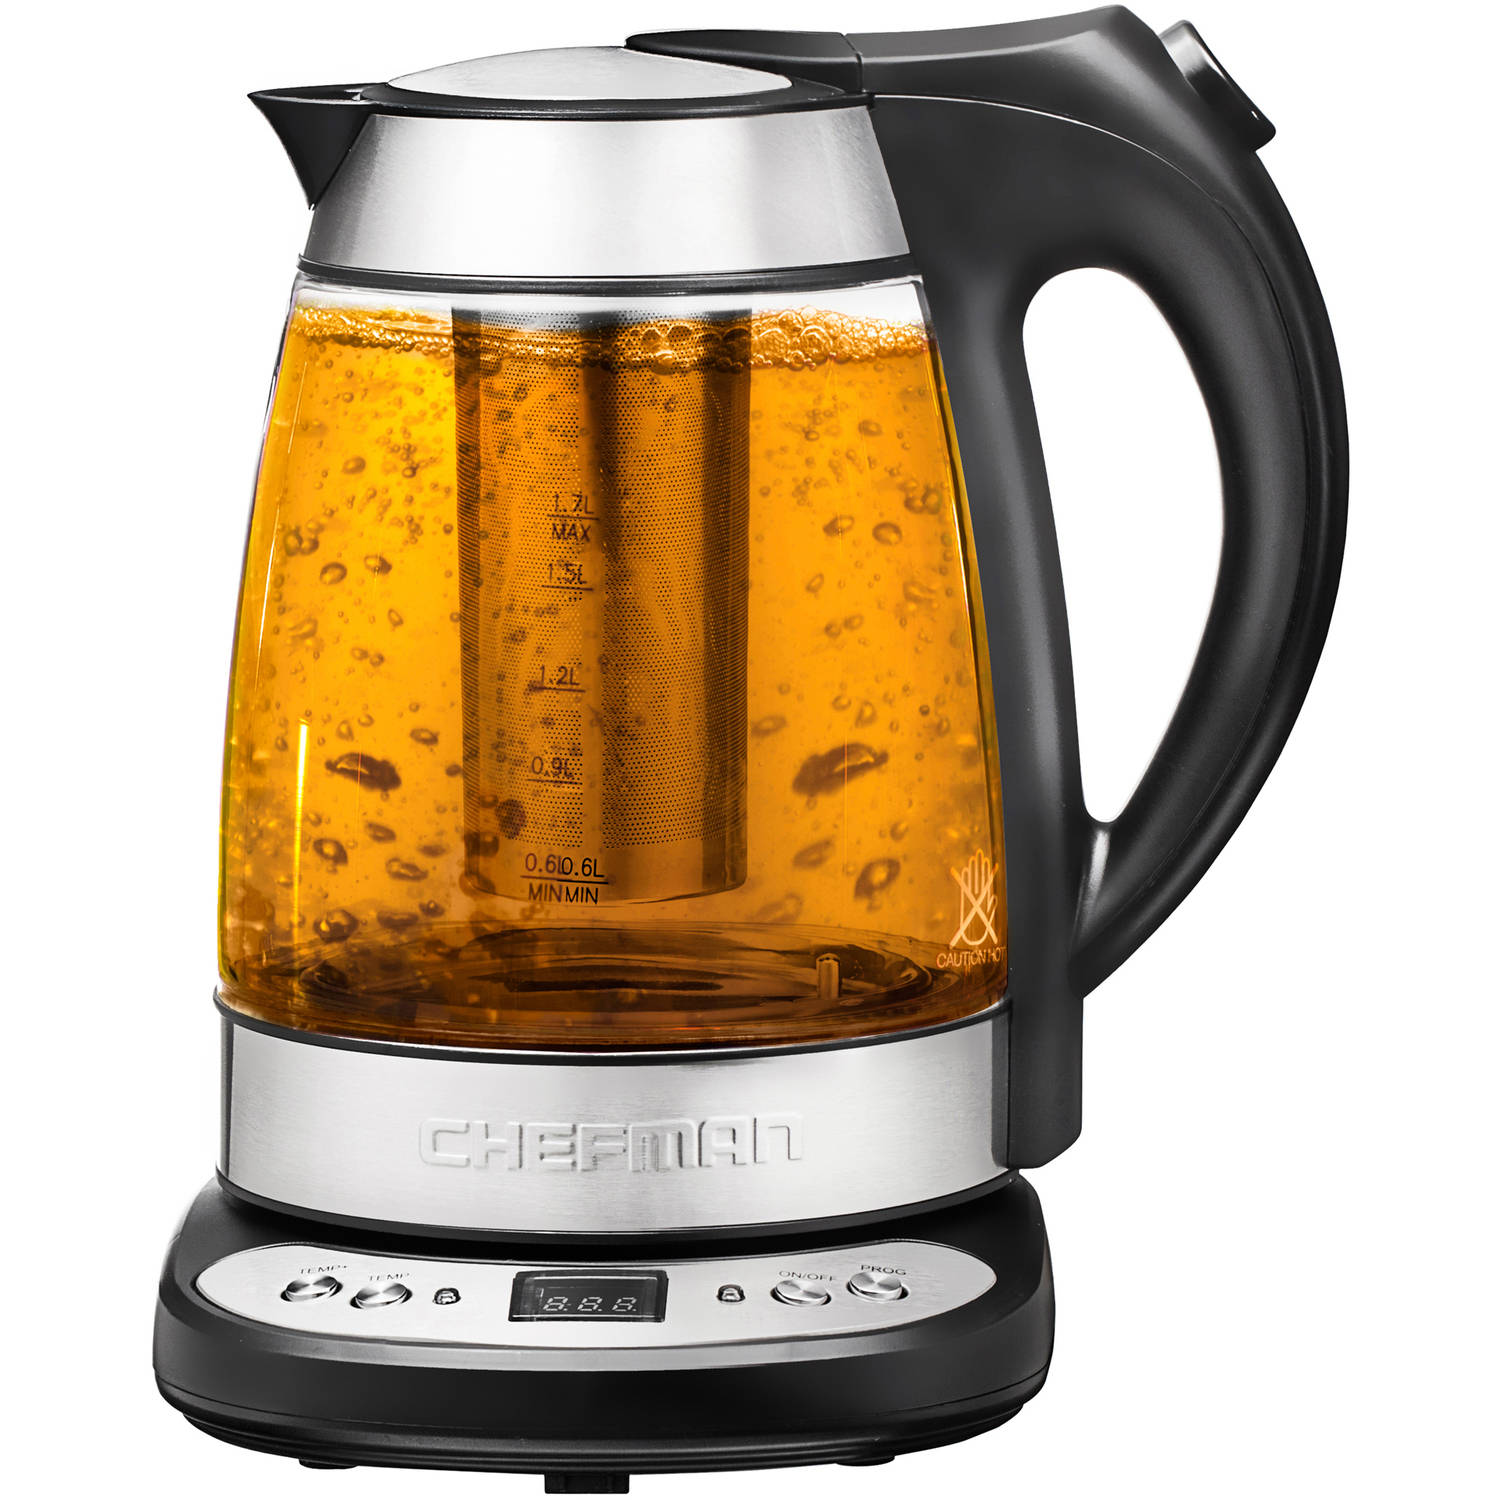 Chefman Precision Electric Kettle